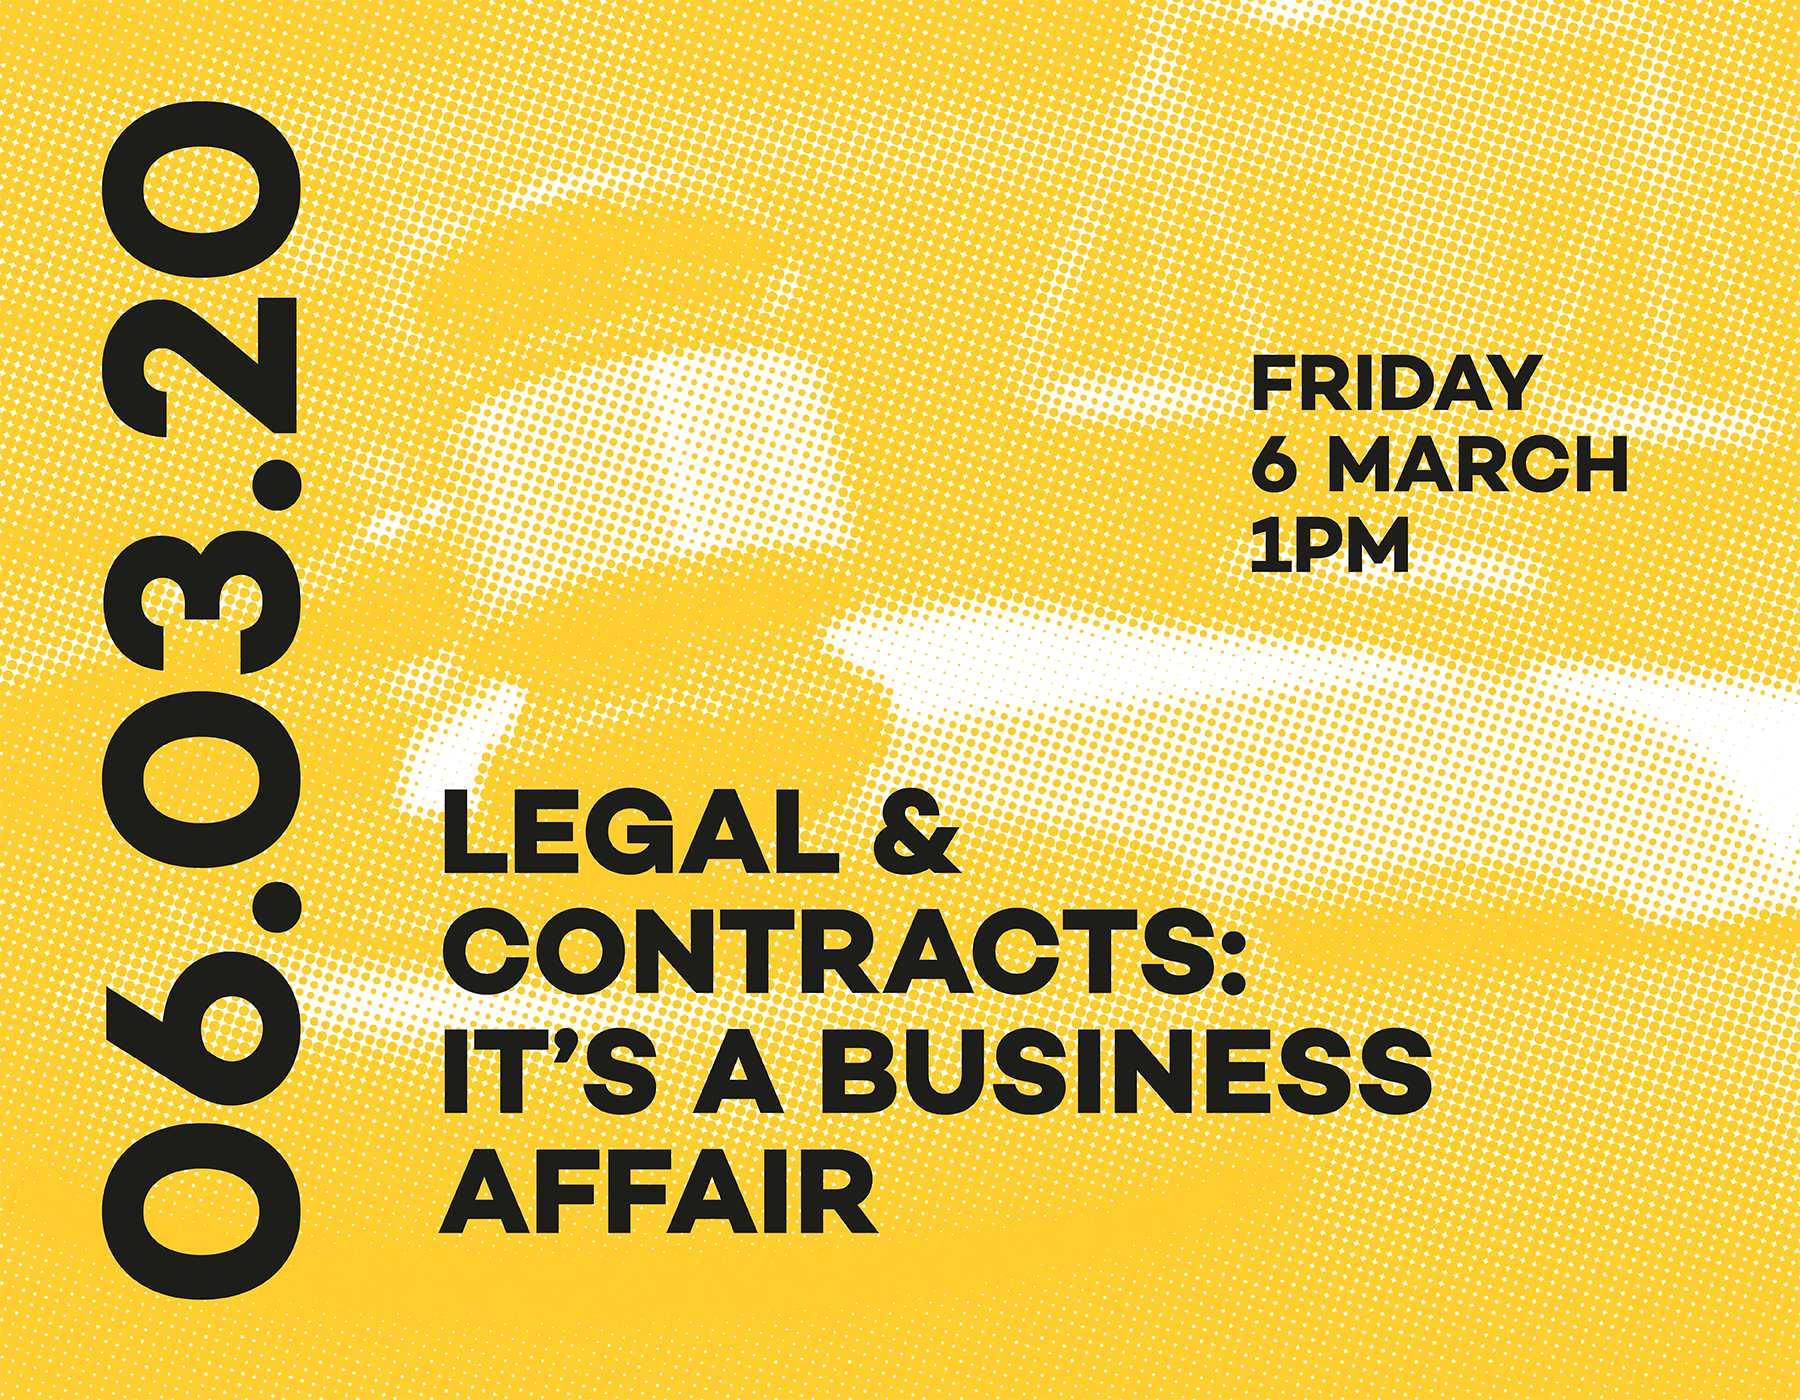 Legal & Contracts: It's a business affair